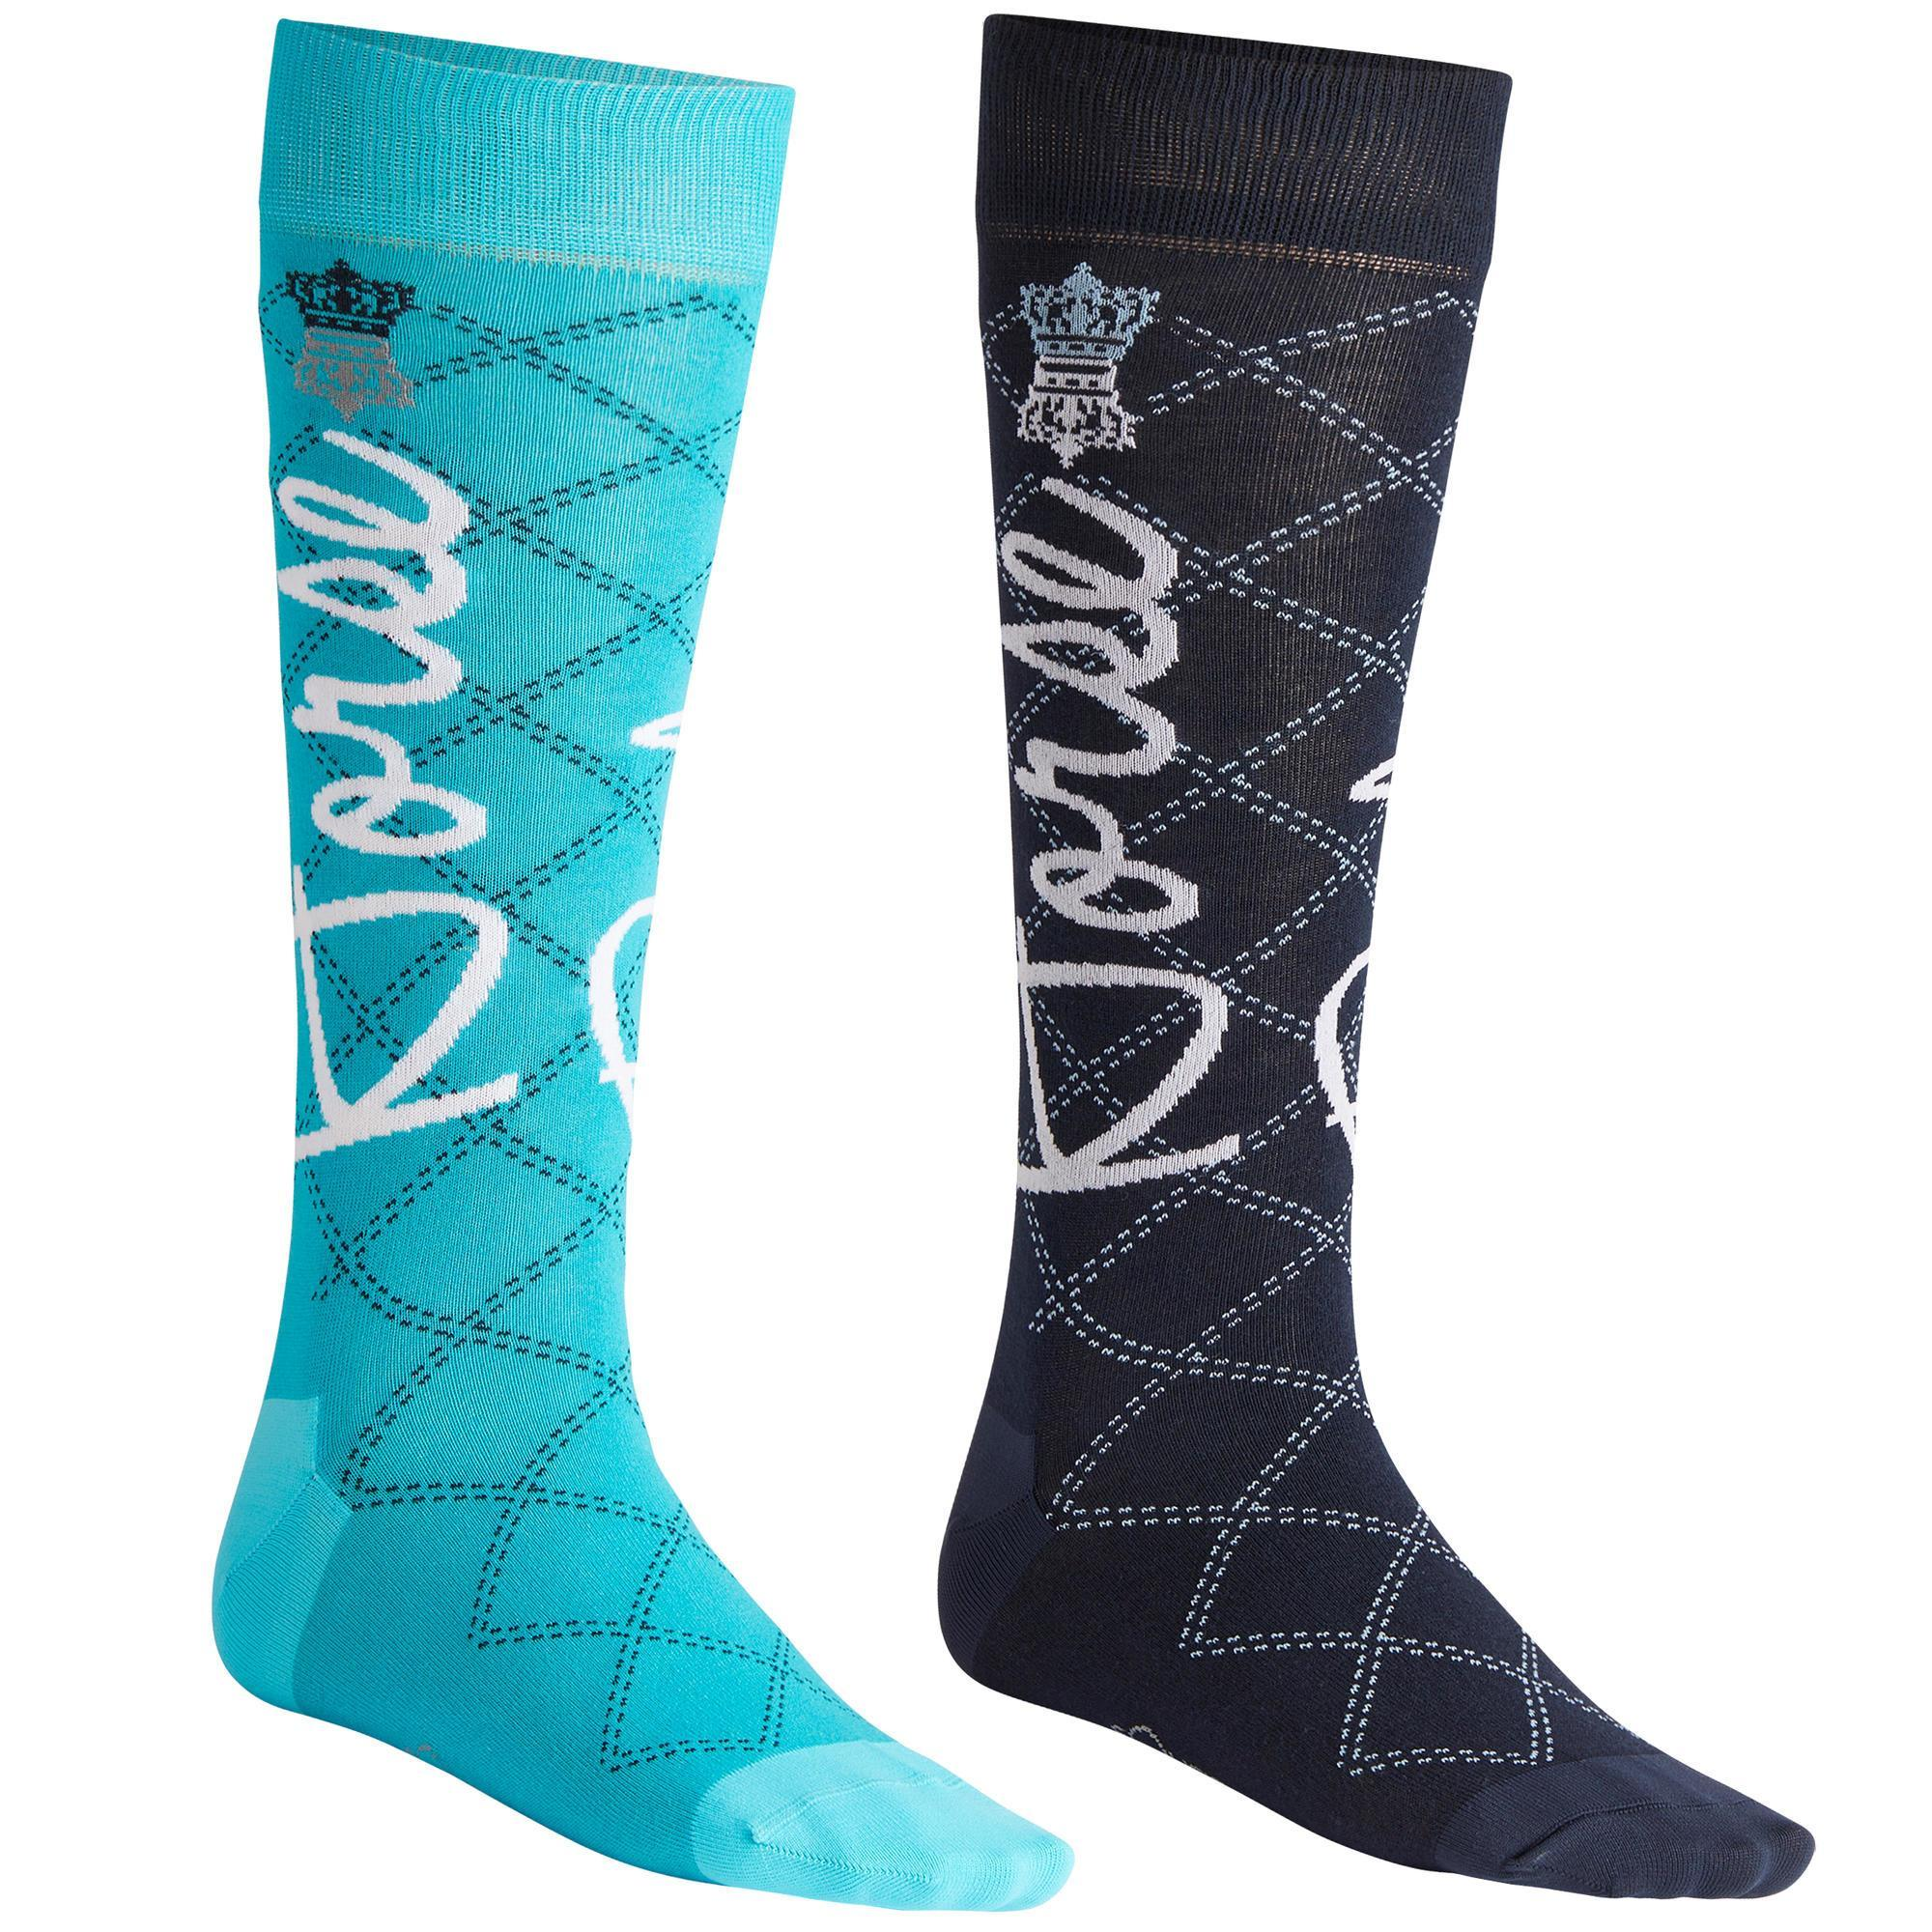 Fouganza Rijkousen dames 500 LIGHT marineblauw en turquoise